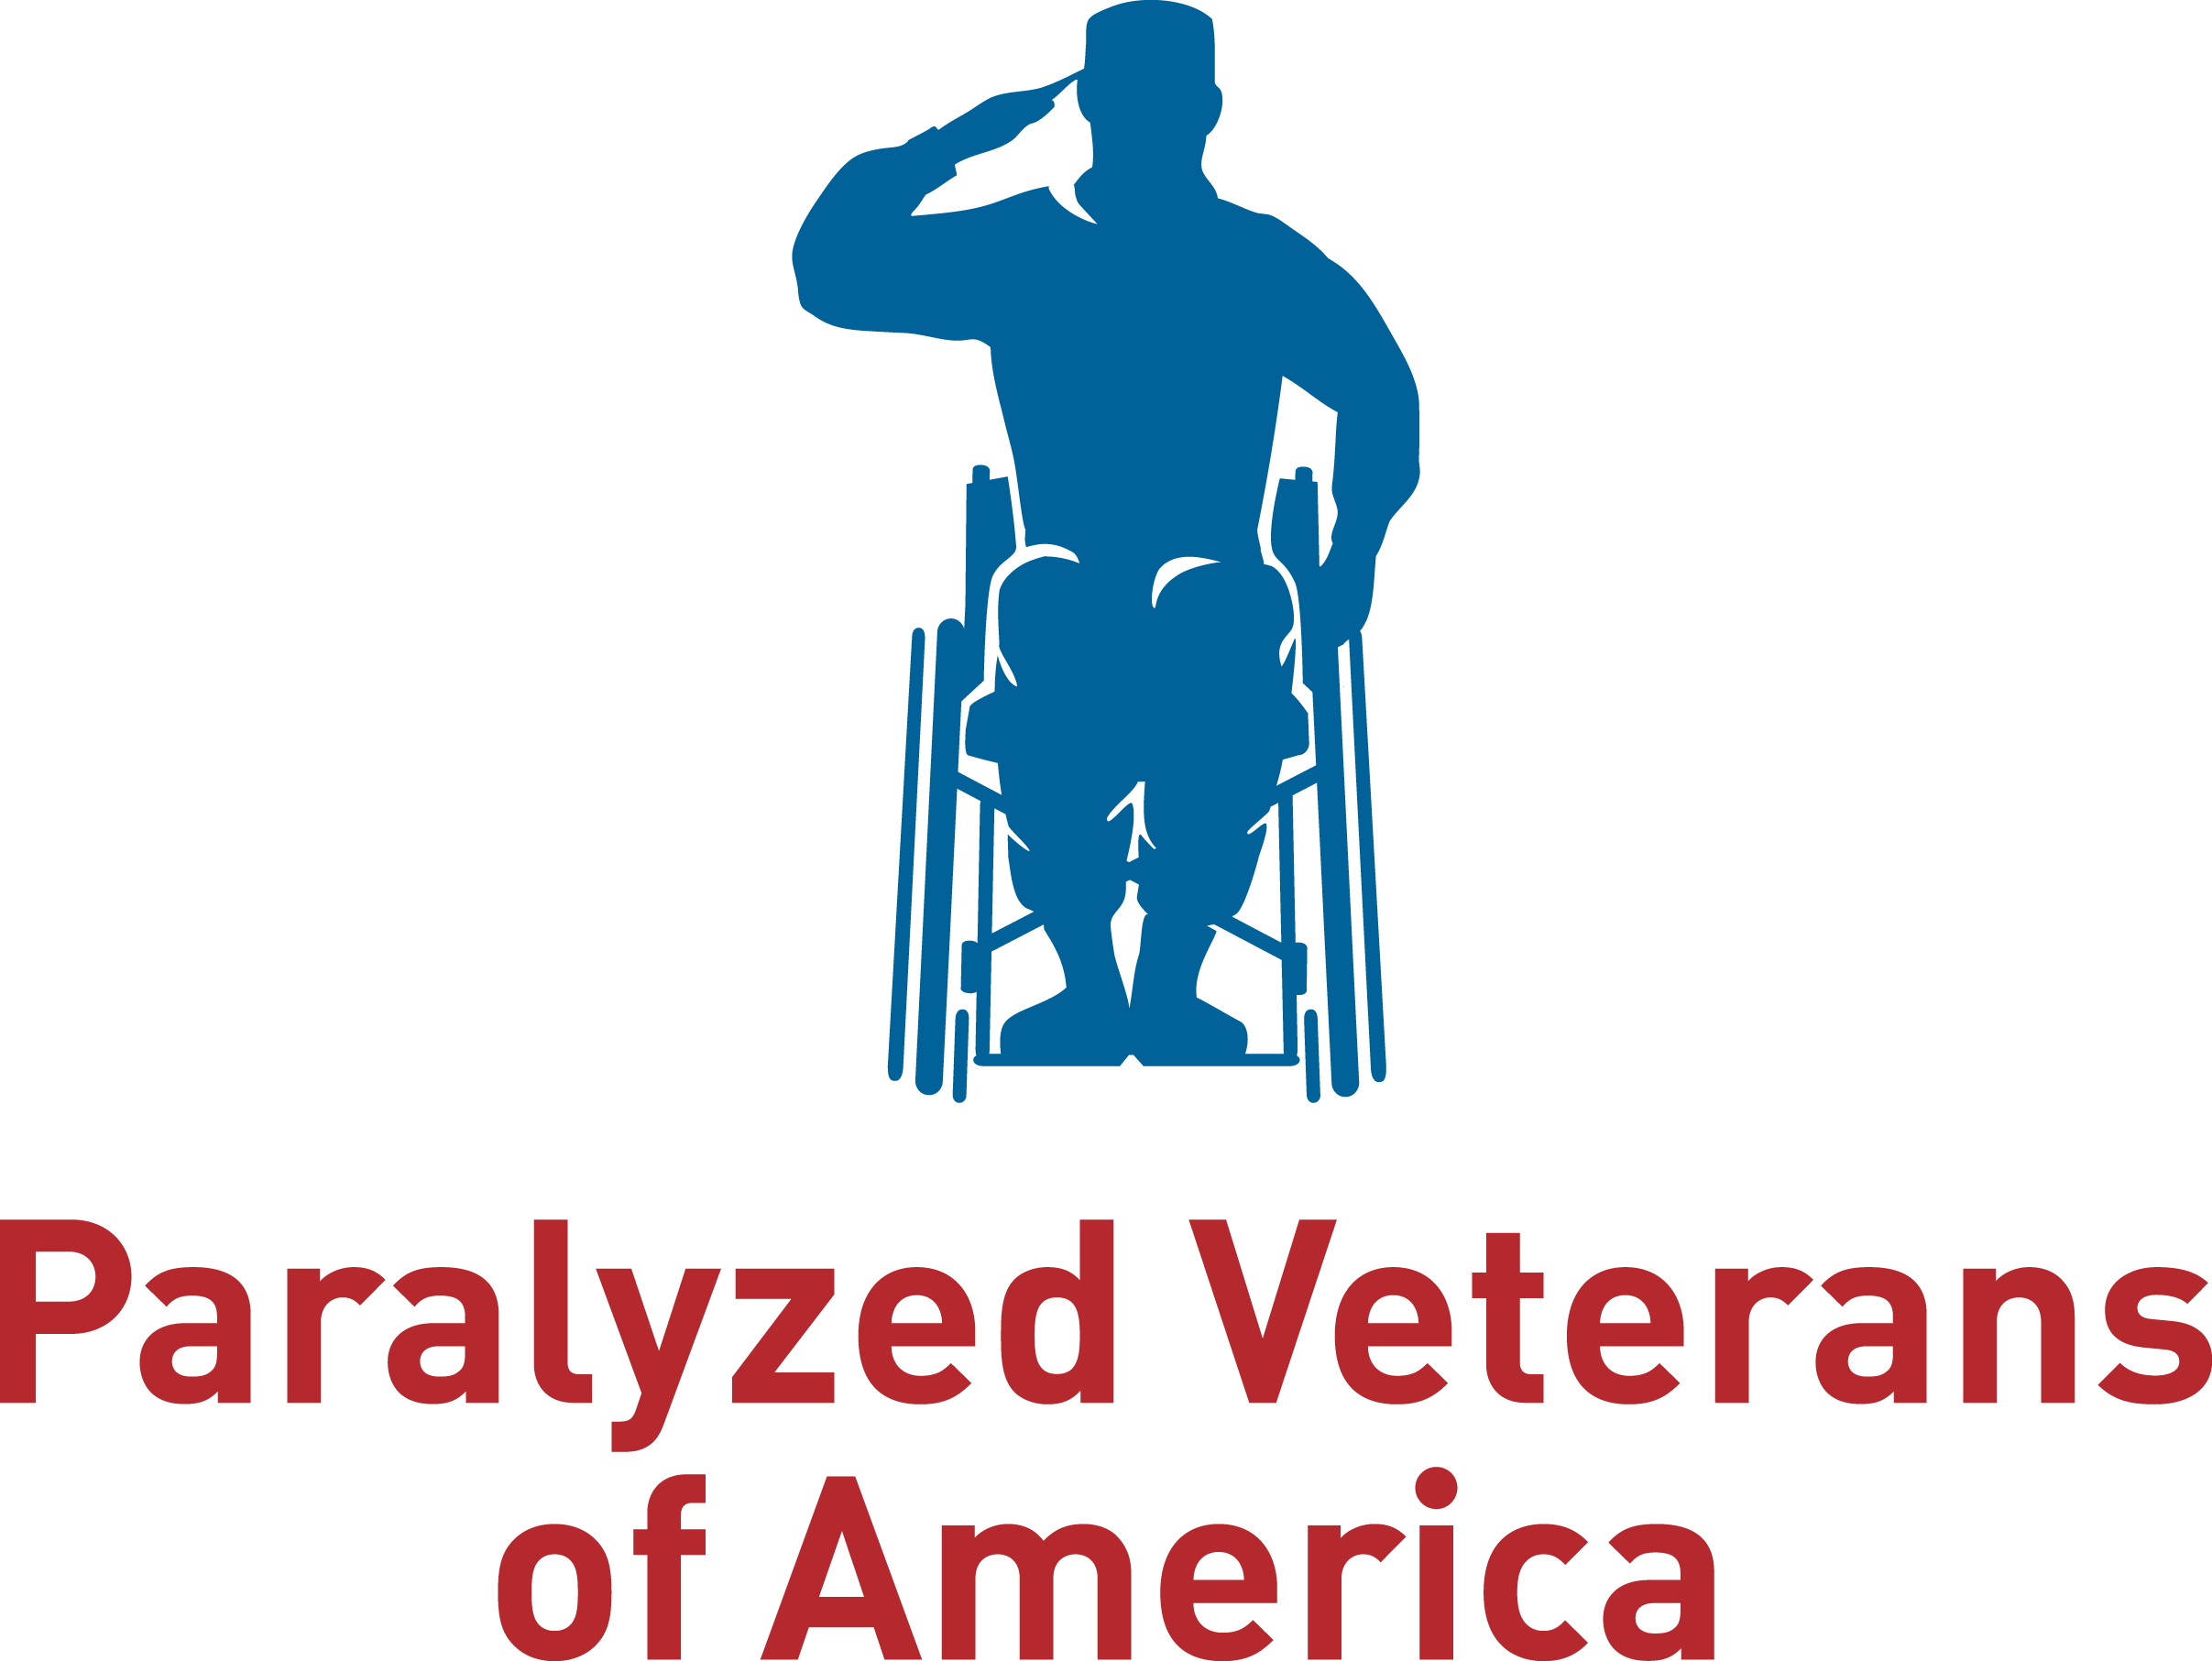 A portion of each vehicle purchased will be donated to the Paralyzed Veterans of America.